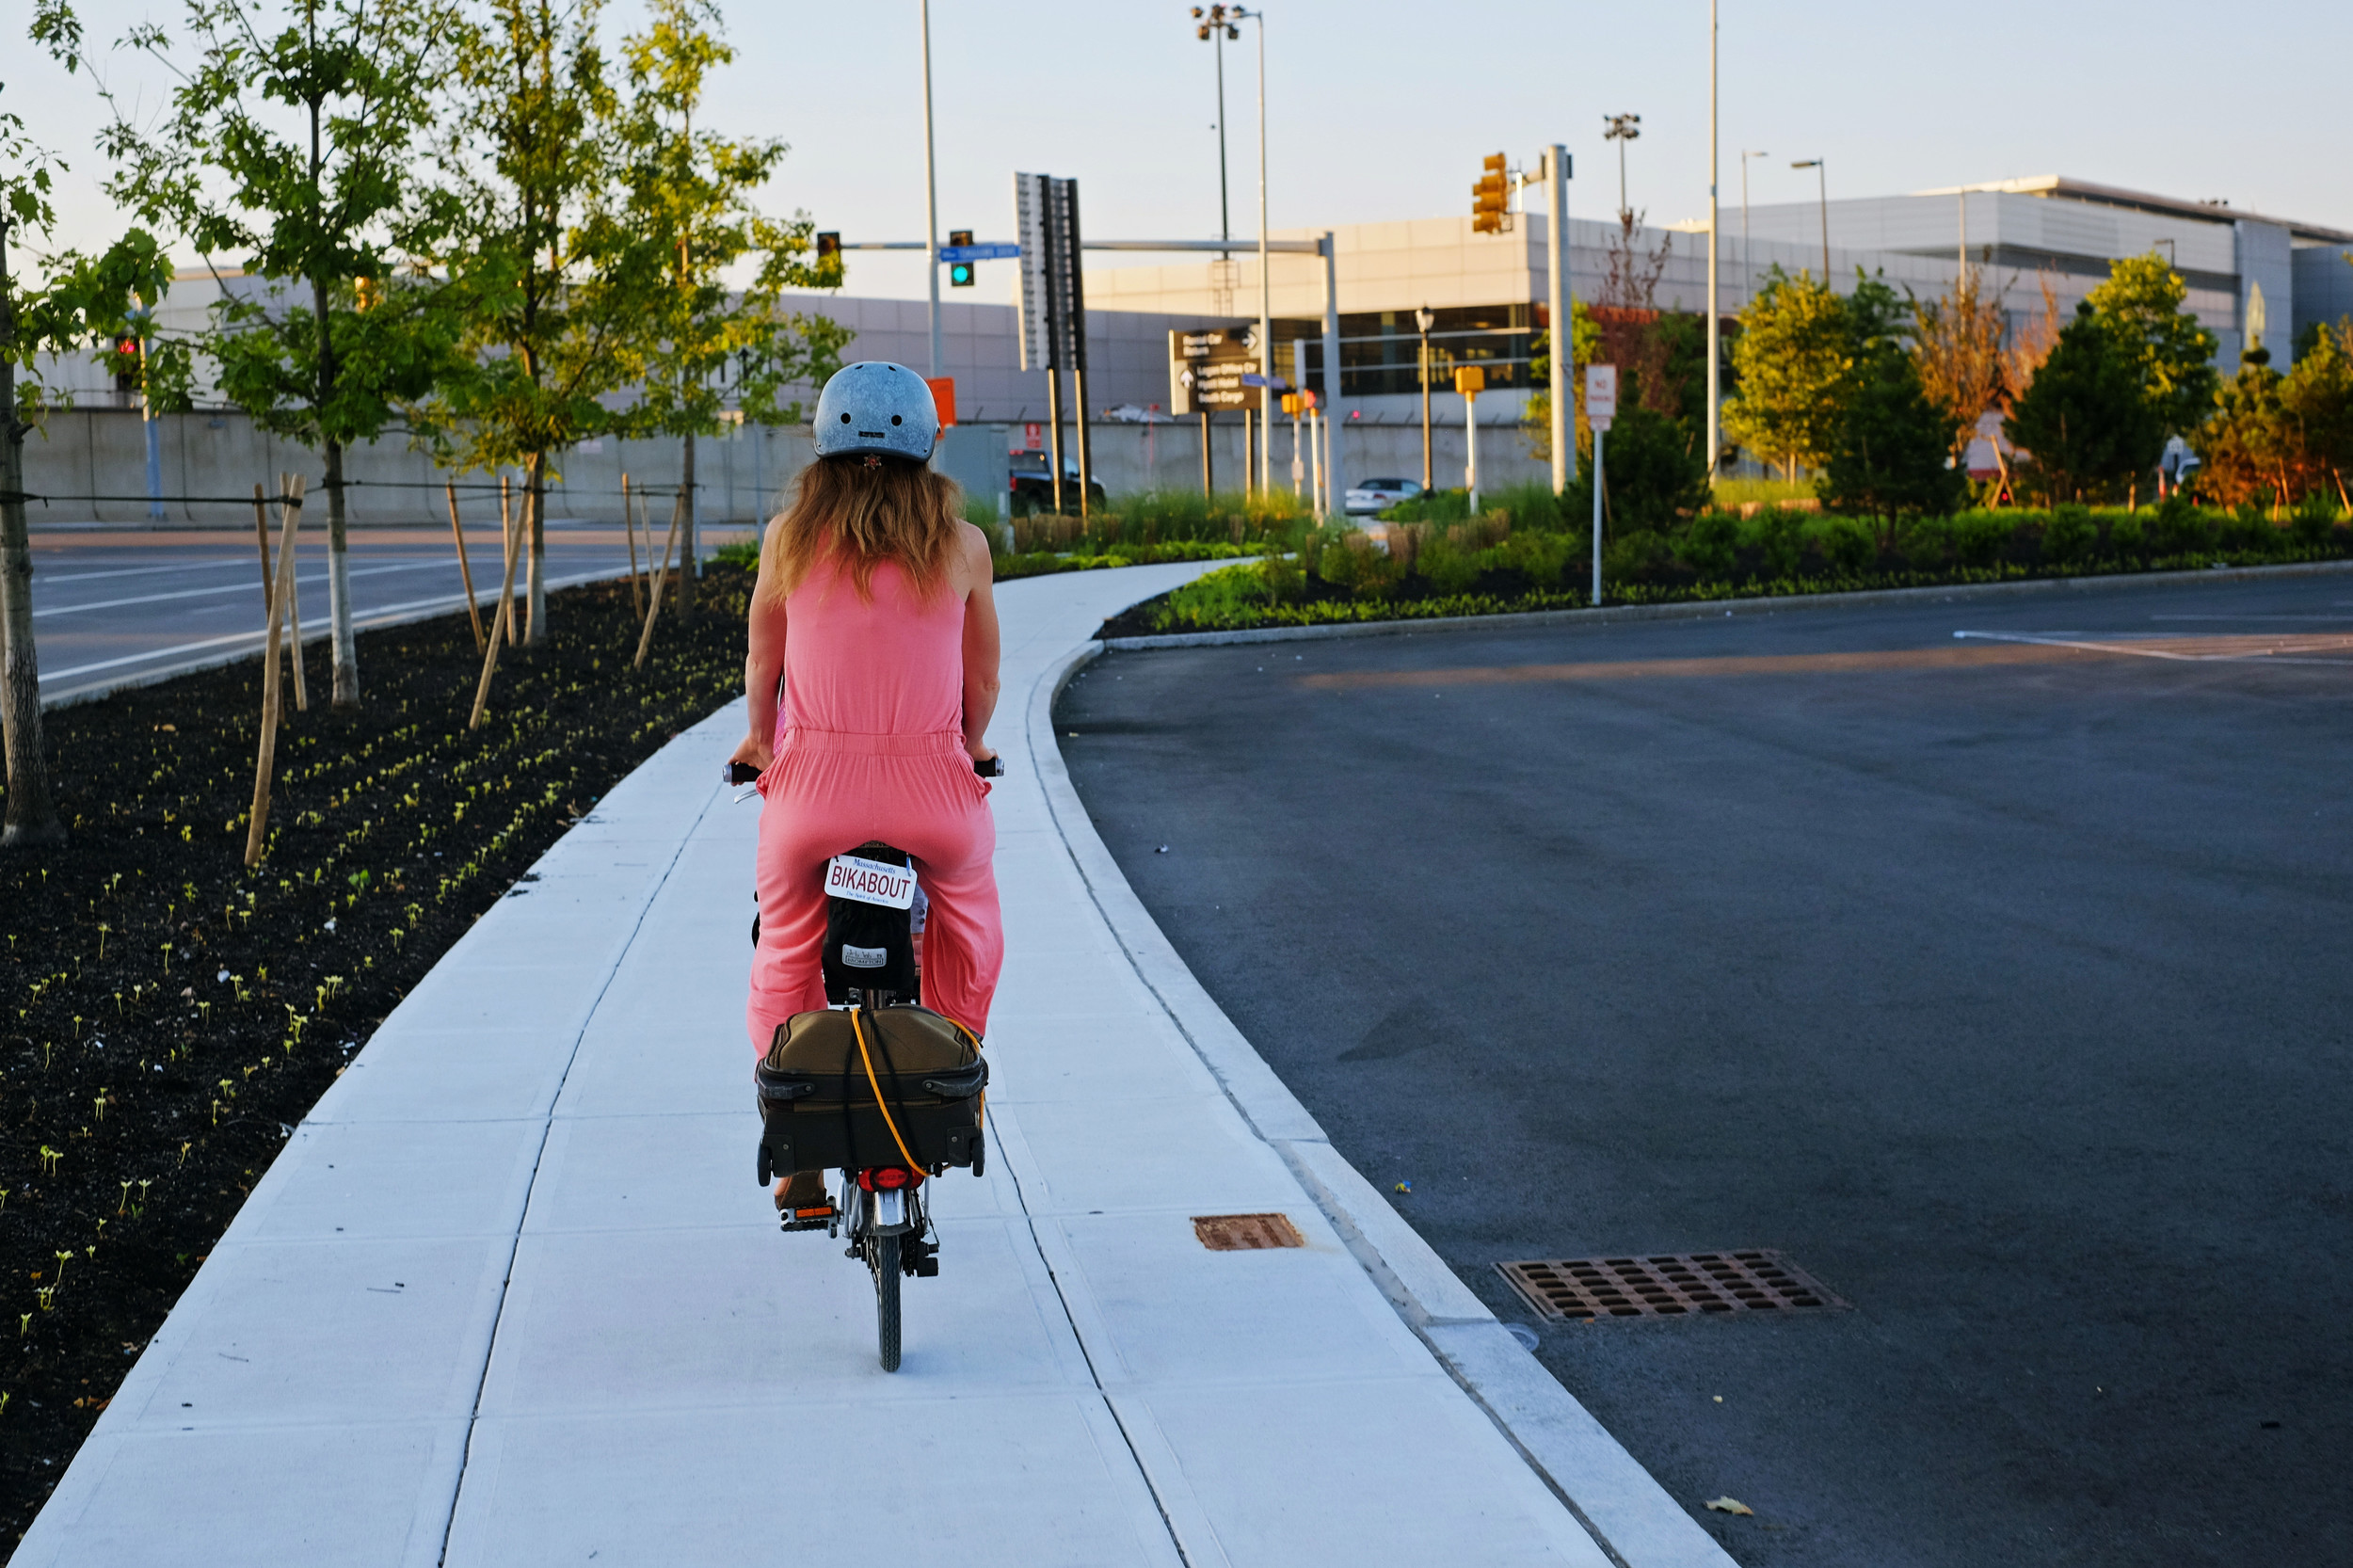 The Harborside Road sidewalks from the Greenway to terminal A: Wide, pristine, and devoid of foot-bound traffic. Giddyup!